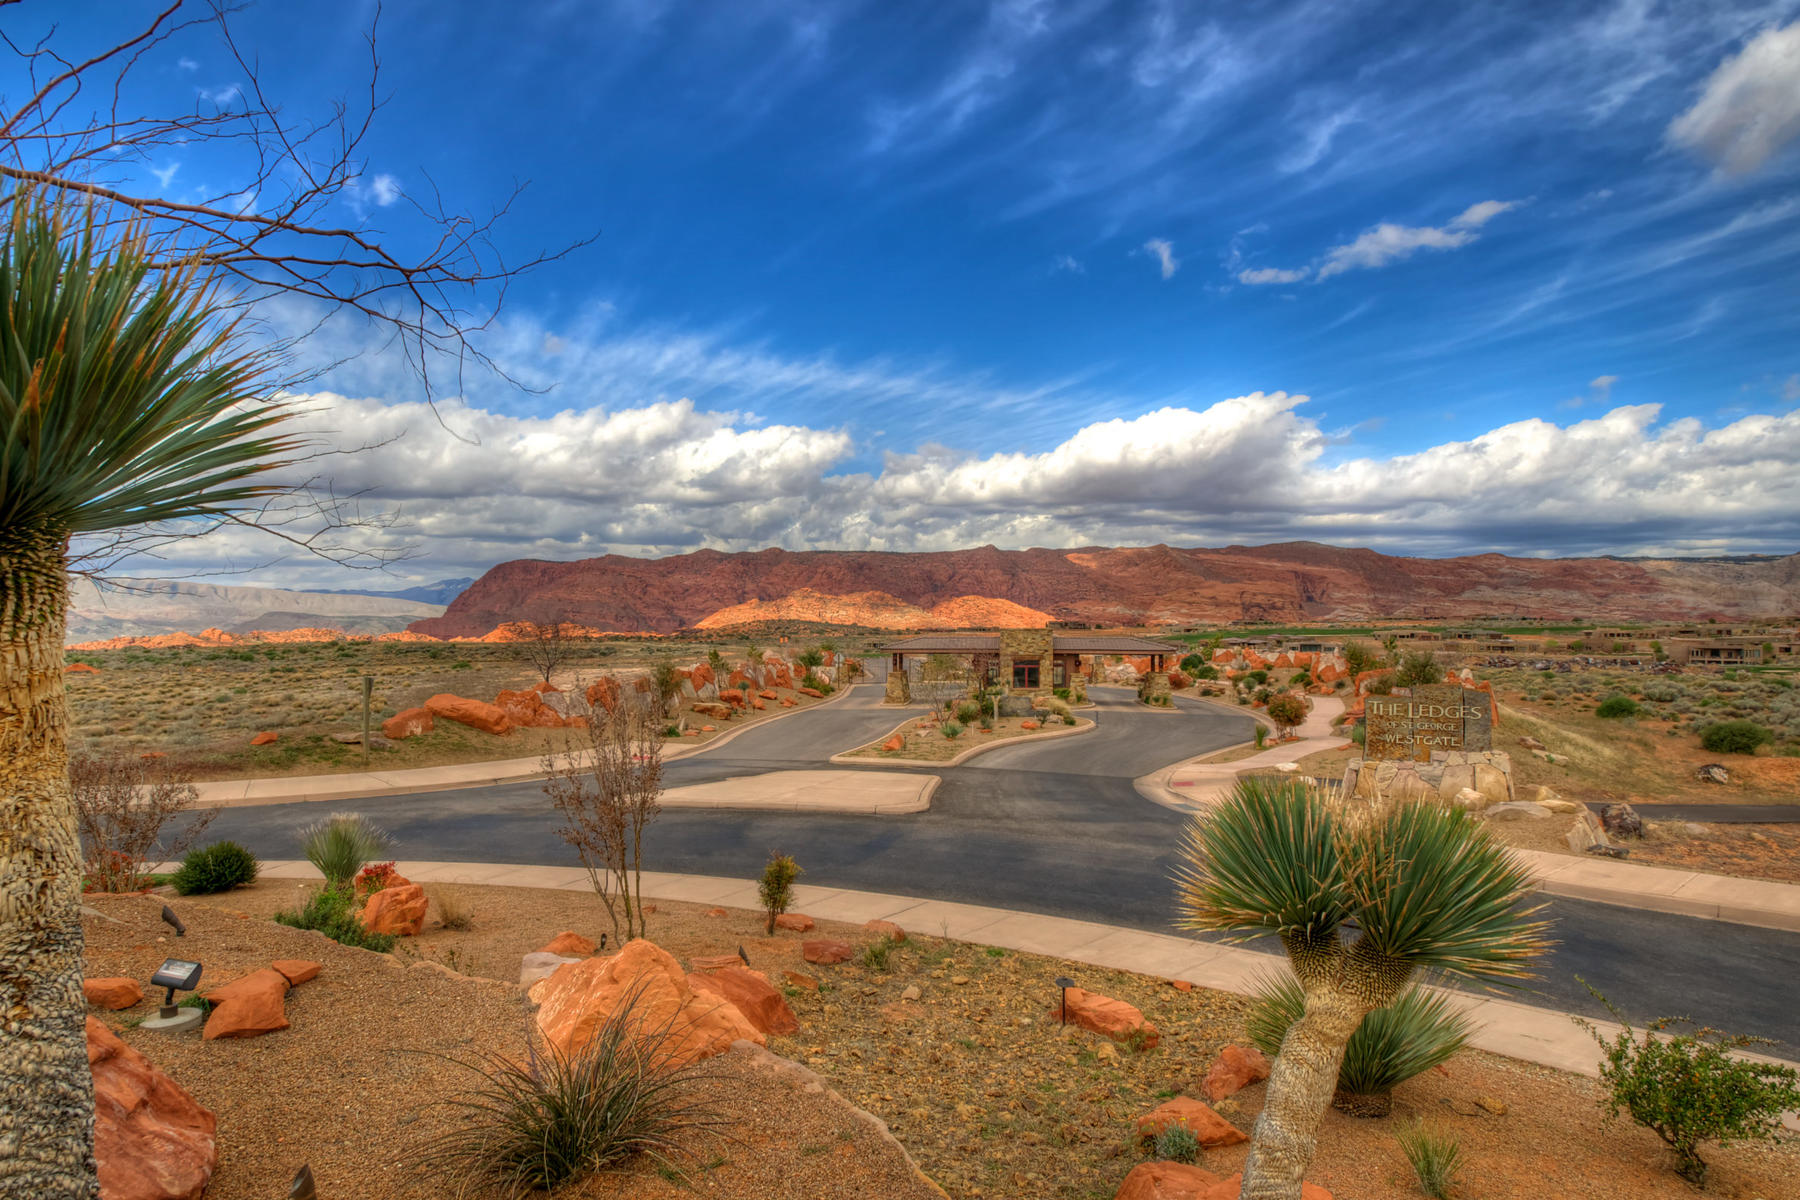 Land for Sale at Quiet Destination with Spectacular Snow Canyon Views Petroglyph Dr Lot 11 St. George, Utah 84770 United States